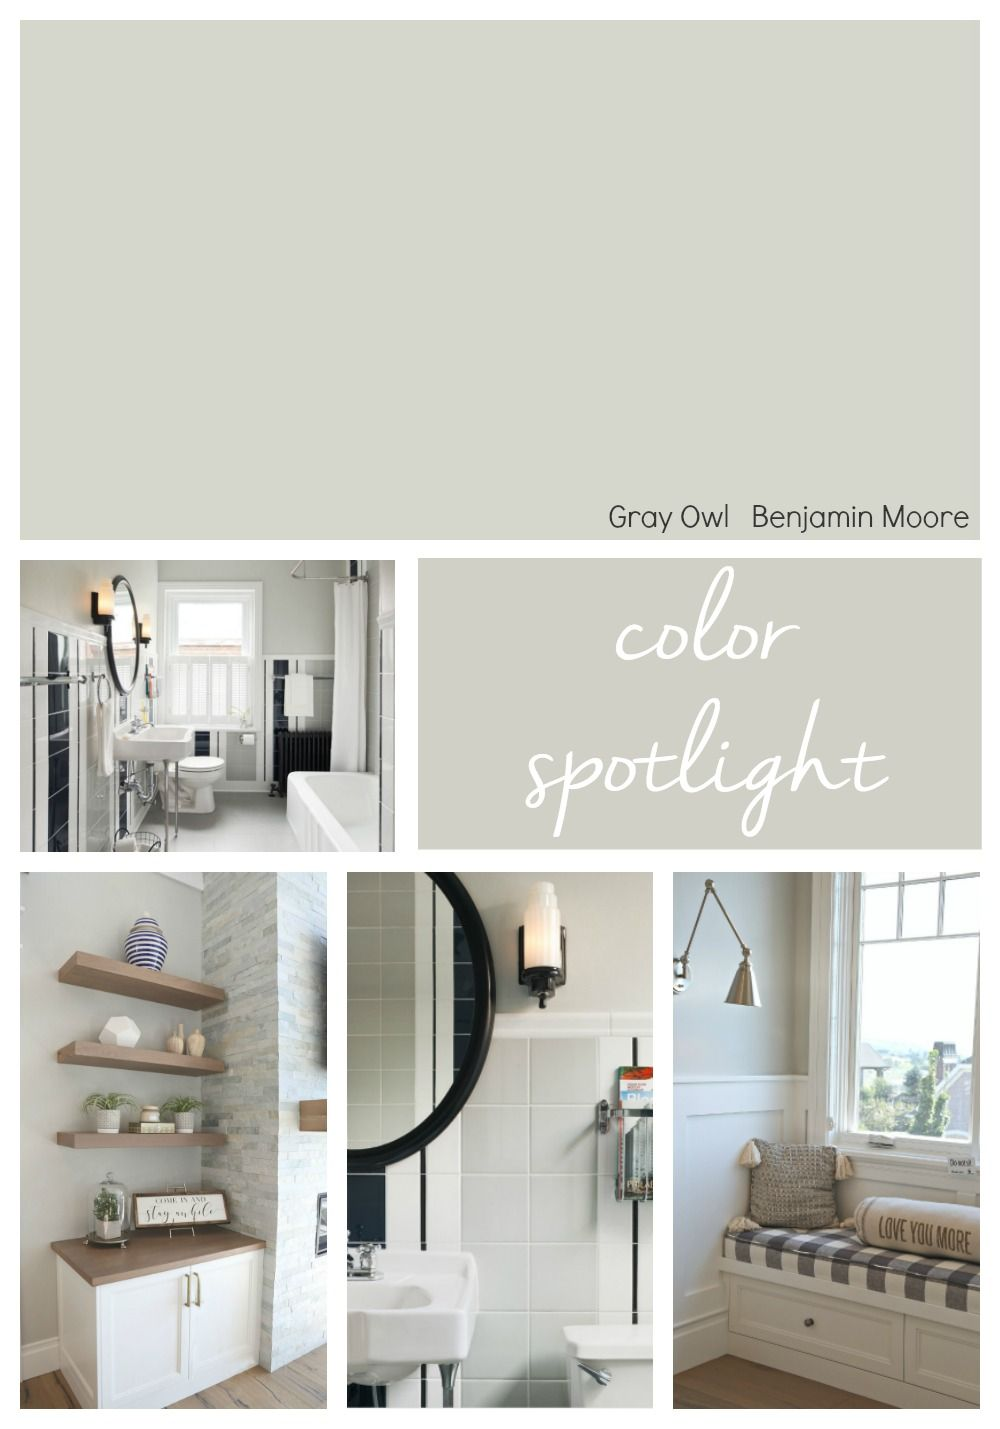 Best Benjamin Moore Gray Owl Color Spotlight Benjamin Moore 400 x 300